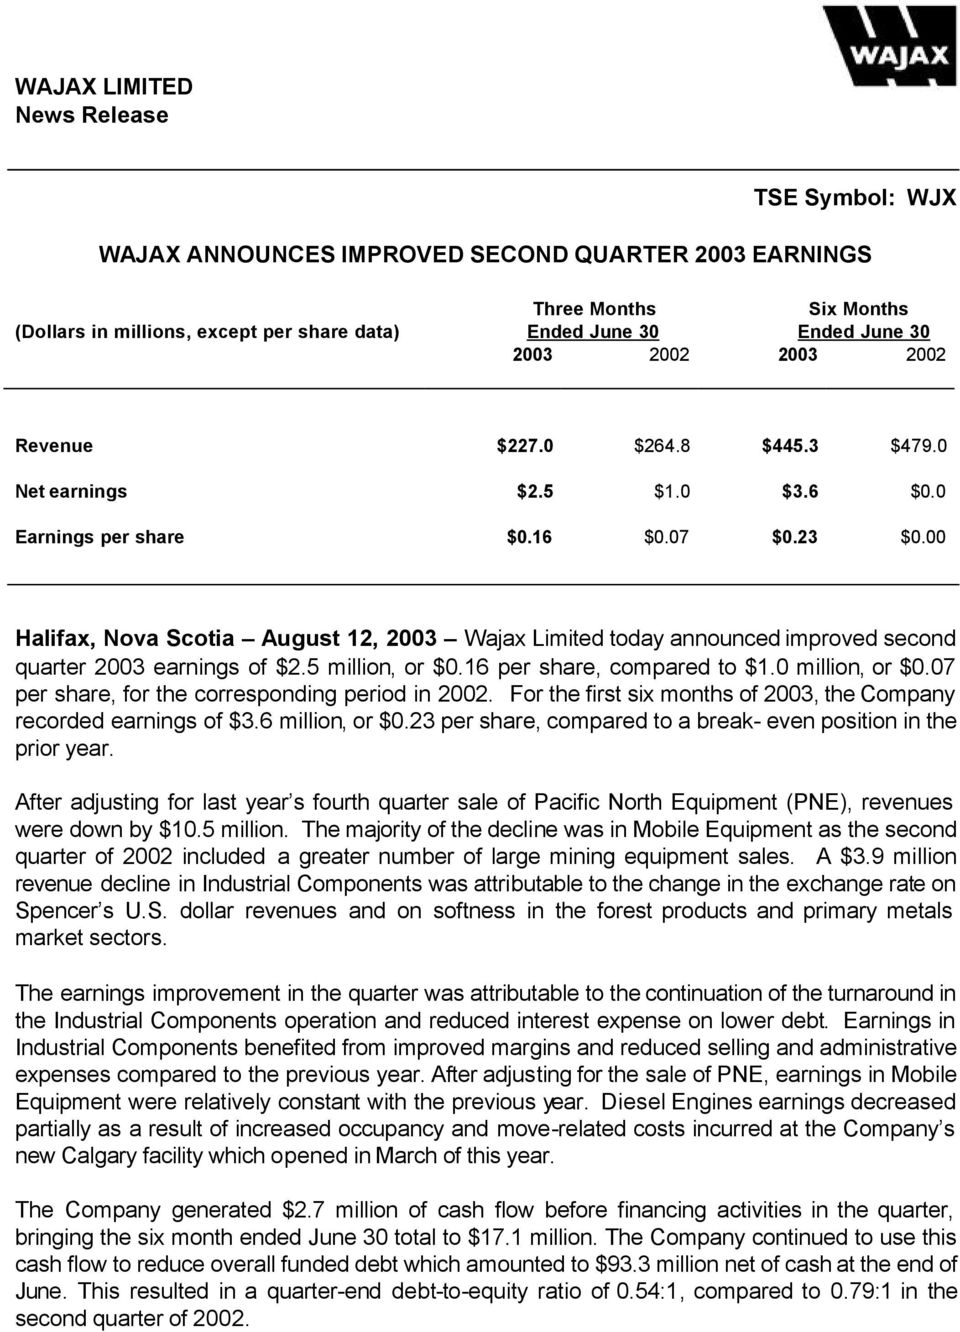 00 Halifax, Nova Scotia August 12, 2003 Wajax Limited today announced improved second quarter 2003 earnings of 2.5 million, or 0.16 per share, compared to 1.0 million, or 0.